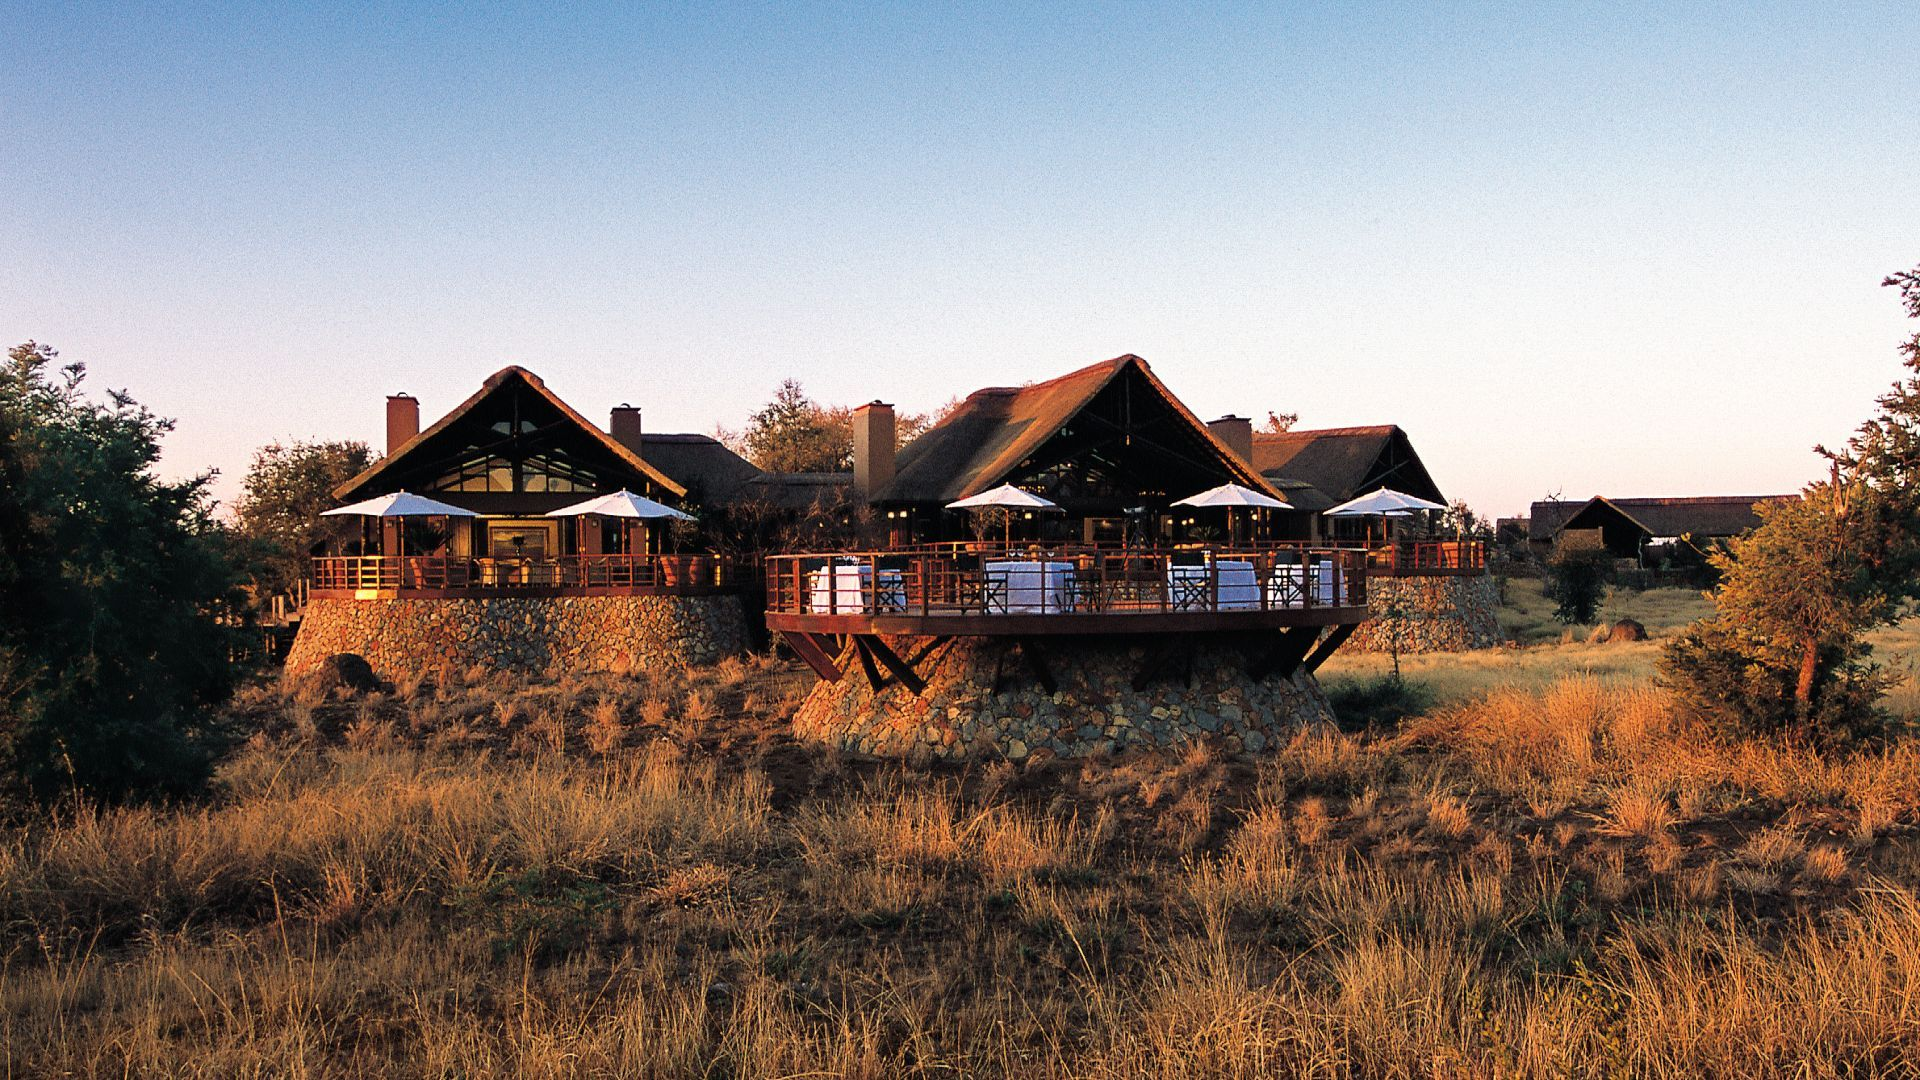 #Mateya Safari Lodge #Molatedi #Africa #SouthAfrica #Hotels #travel #travelblogger #travelgram #travelguide #travels #travelling #travelblog #traveladdict #traveladikkt #beautifuldestinations #bucketlist #luxury #luxurylifestyle #luxurytravel #luxurydestinations #lifestyle #lifestyleblogger #beautifulplaces #beautifulplace #beautiful #beautifuldestination